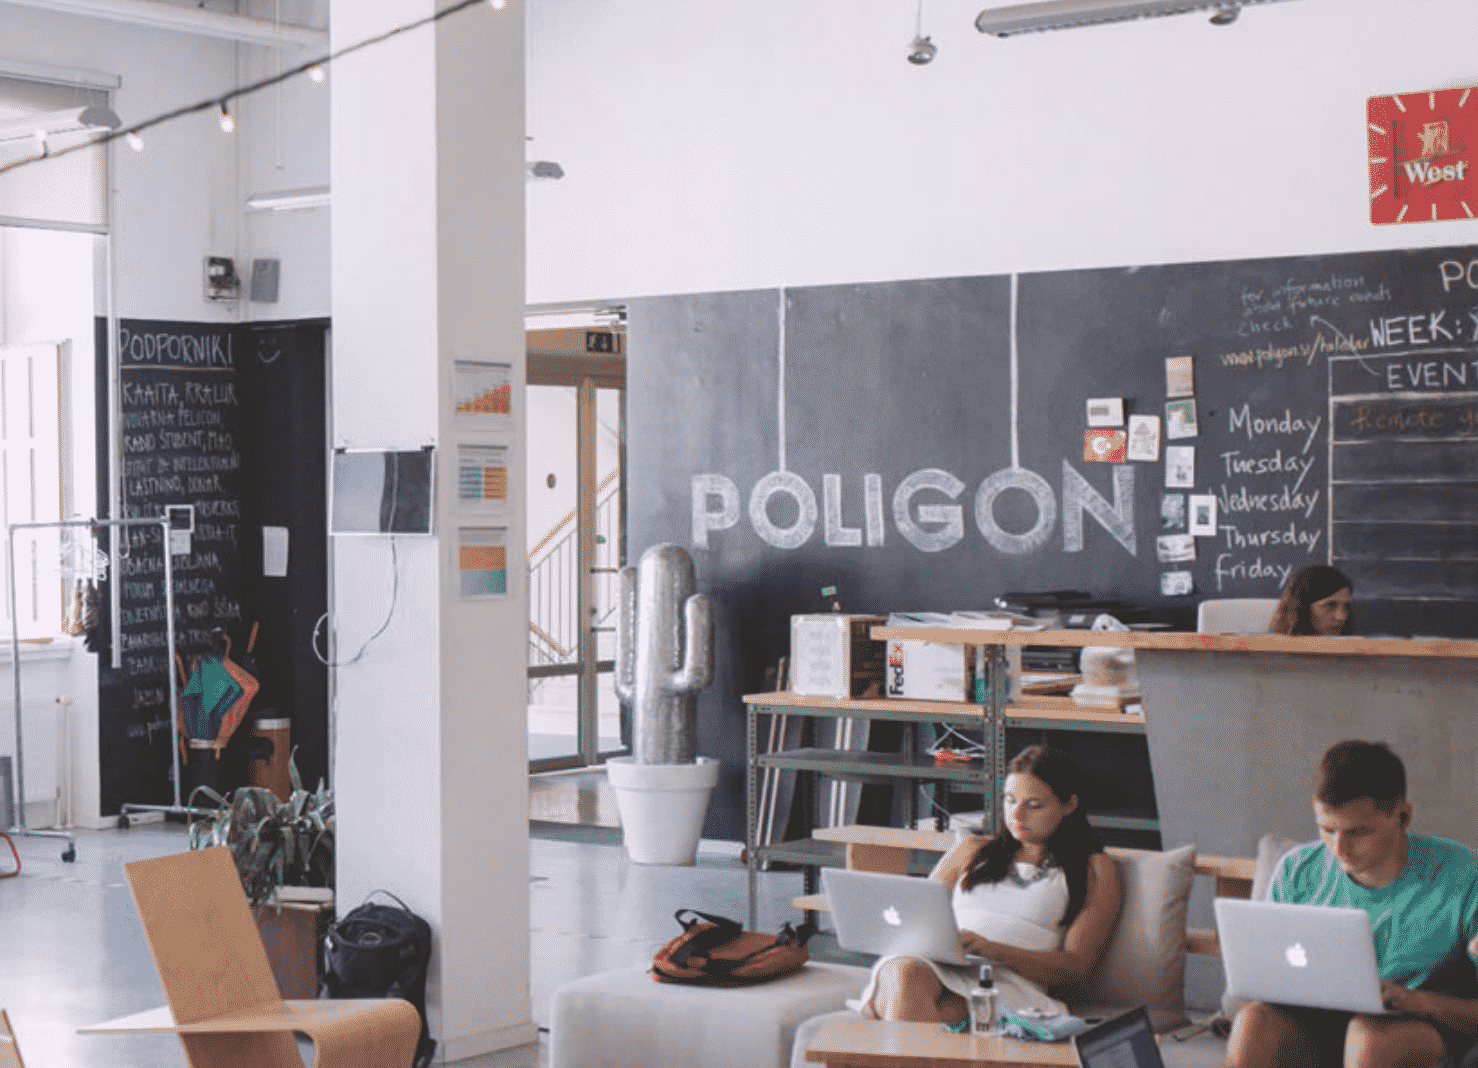 Poligon Co-Working Spots